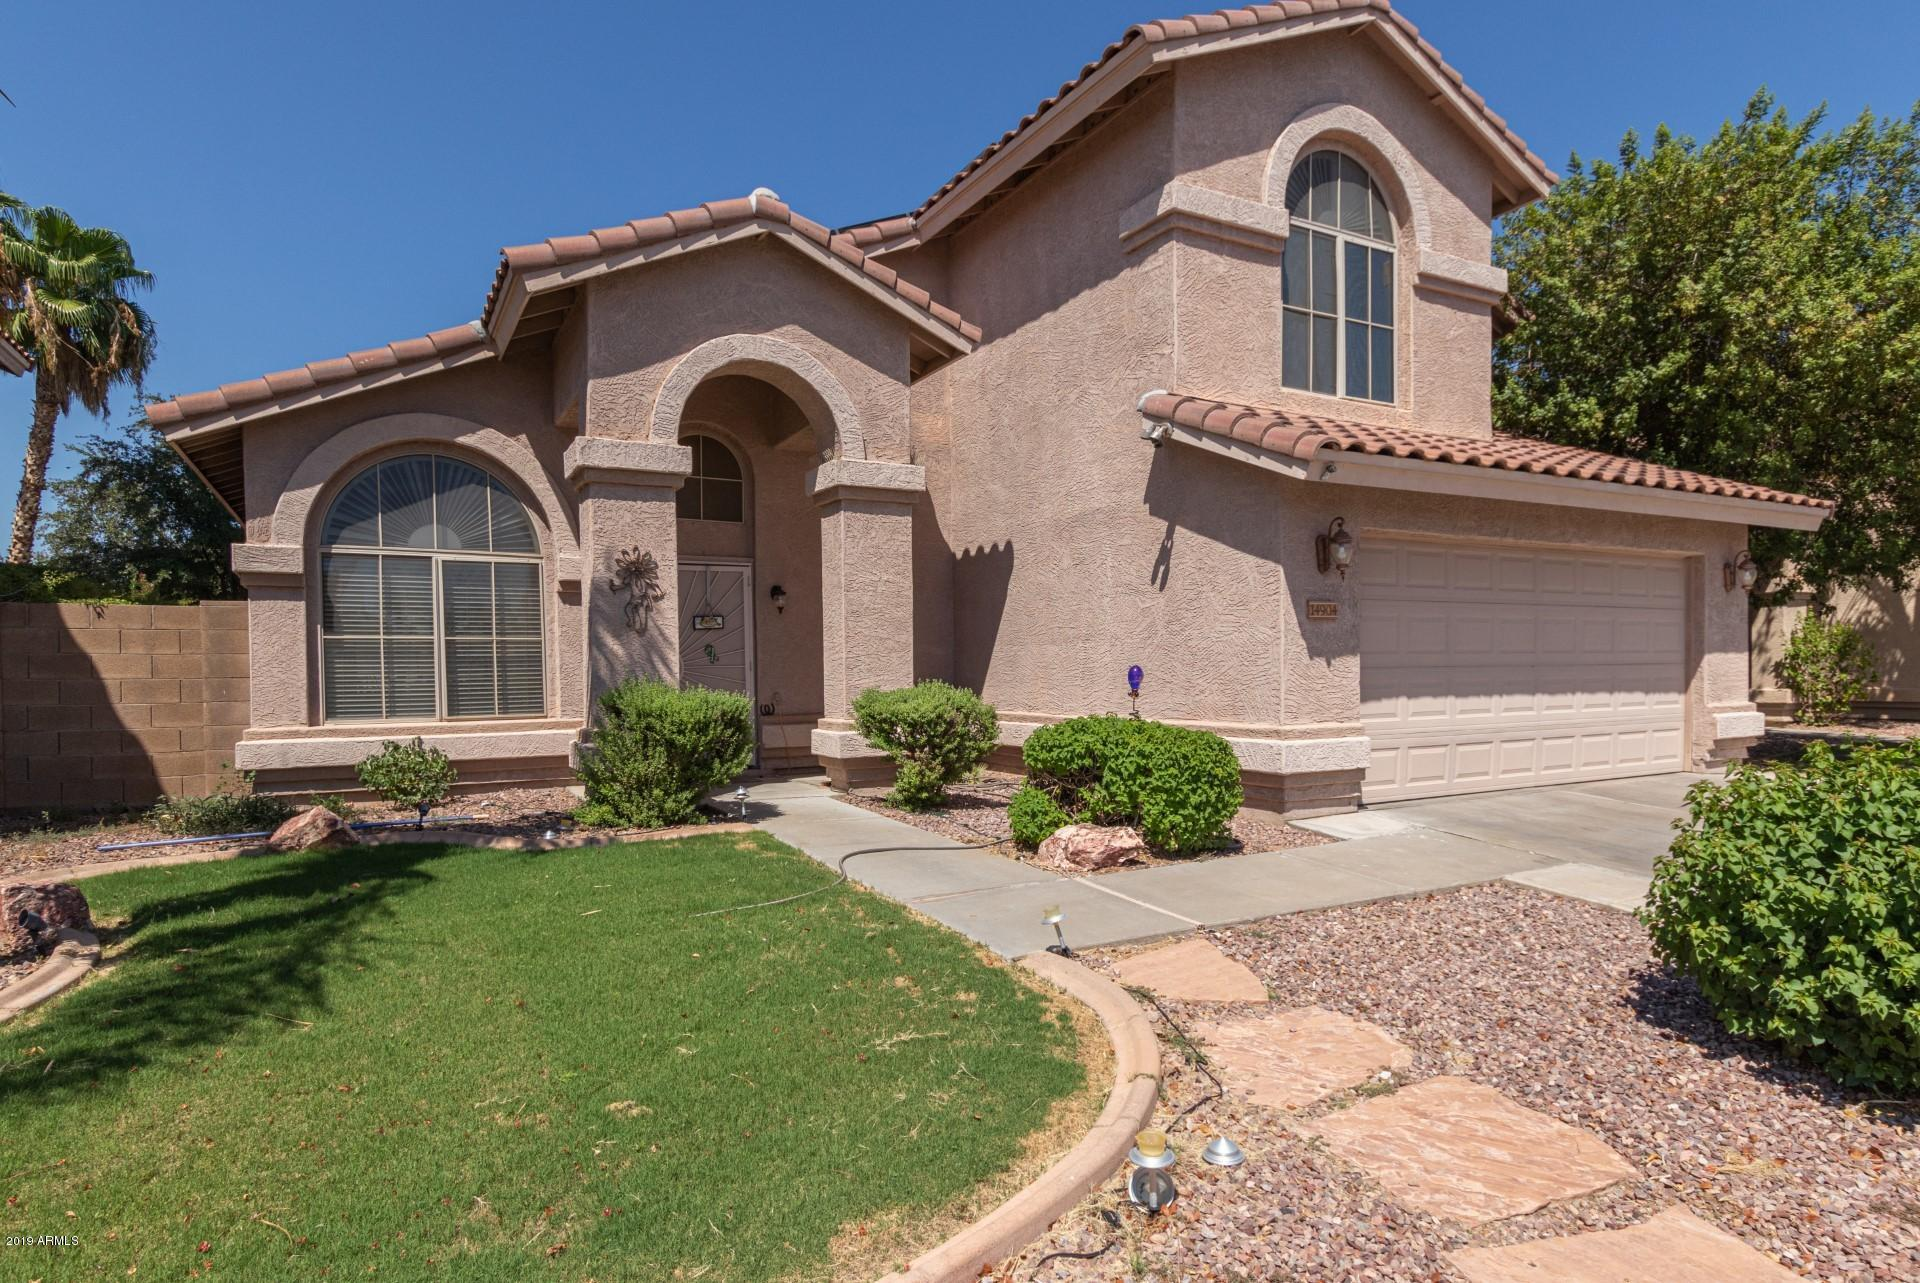 14904 W ELKO Court, Surprise, Arizona